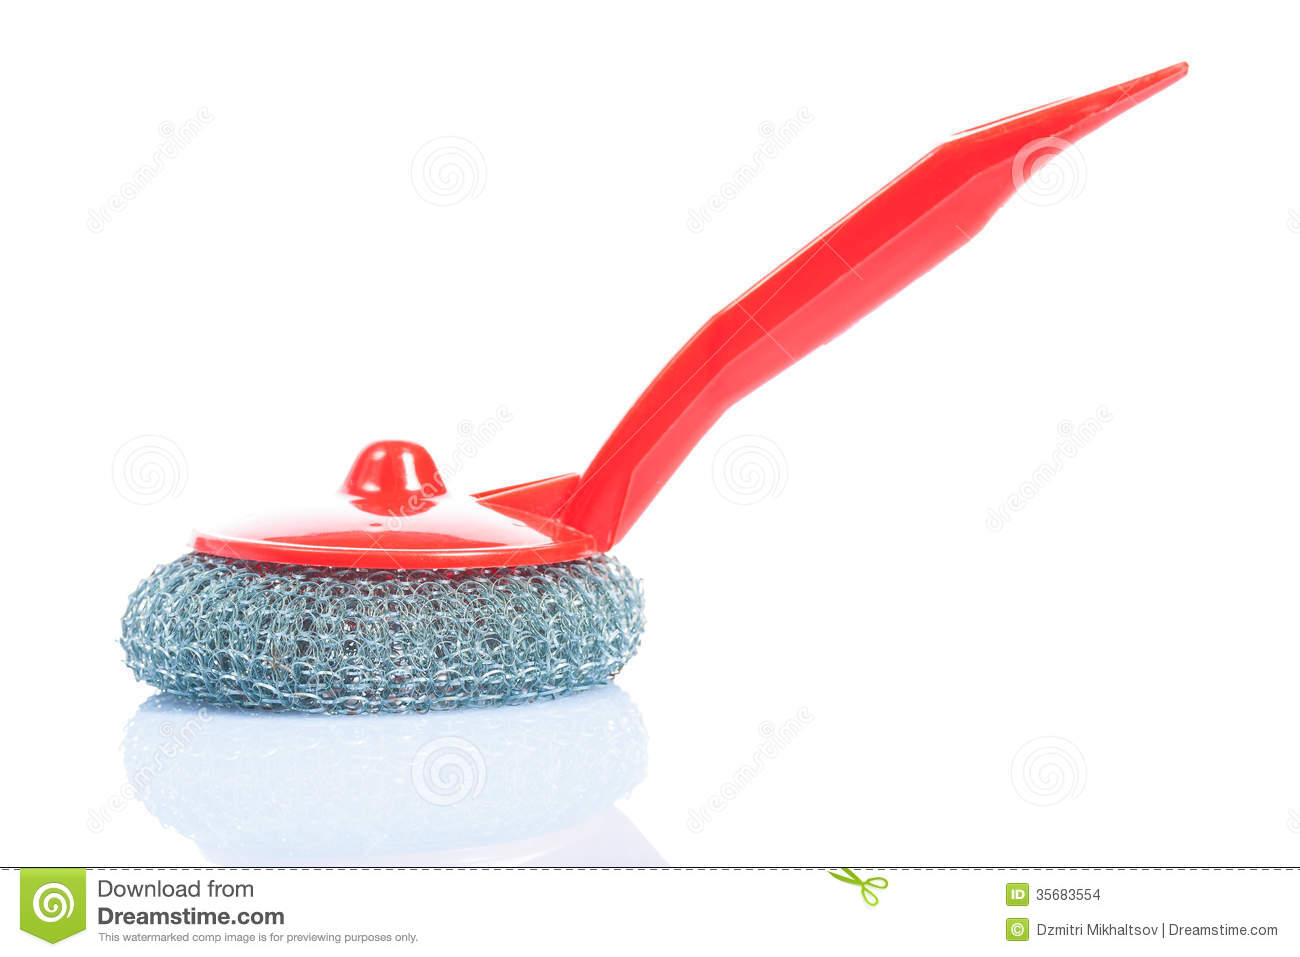 kitchen scrub brush aid mixer sale with red handle isolated stock photo image